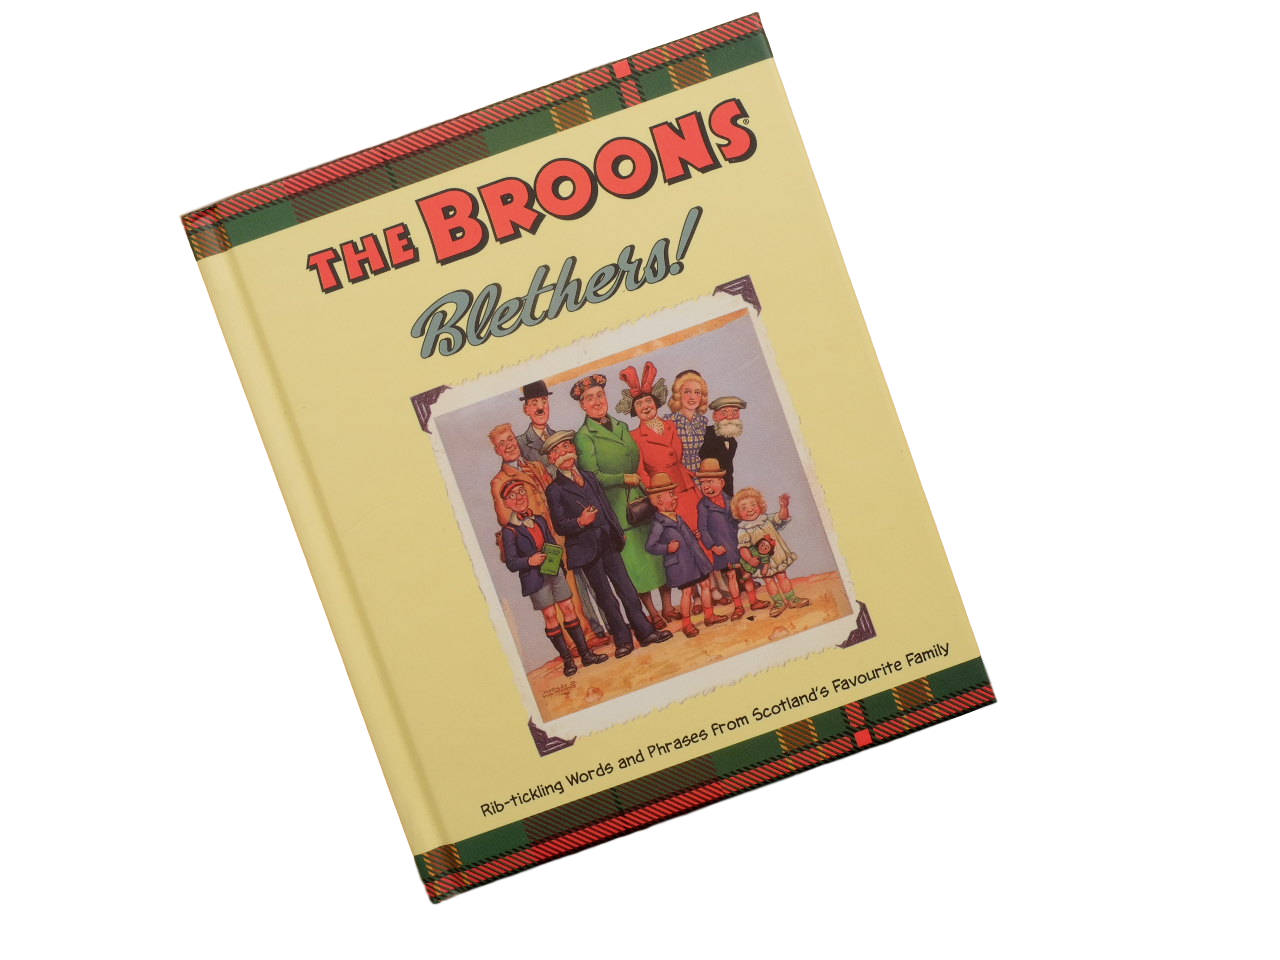 book Broons blethers humorous funny scots language